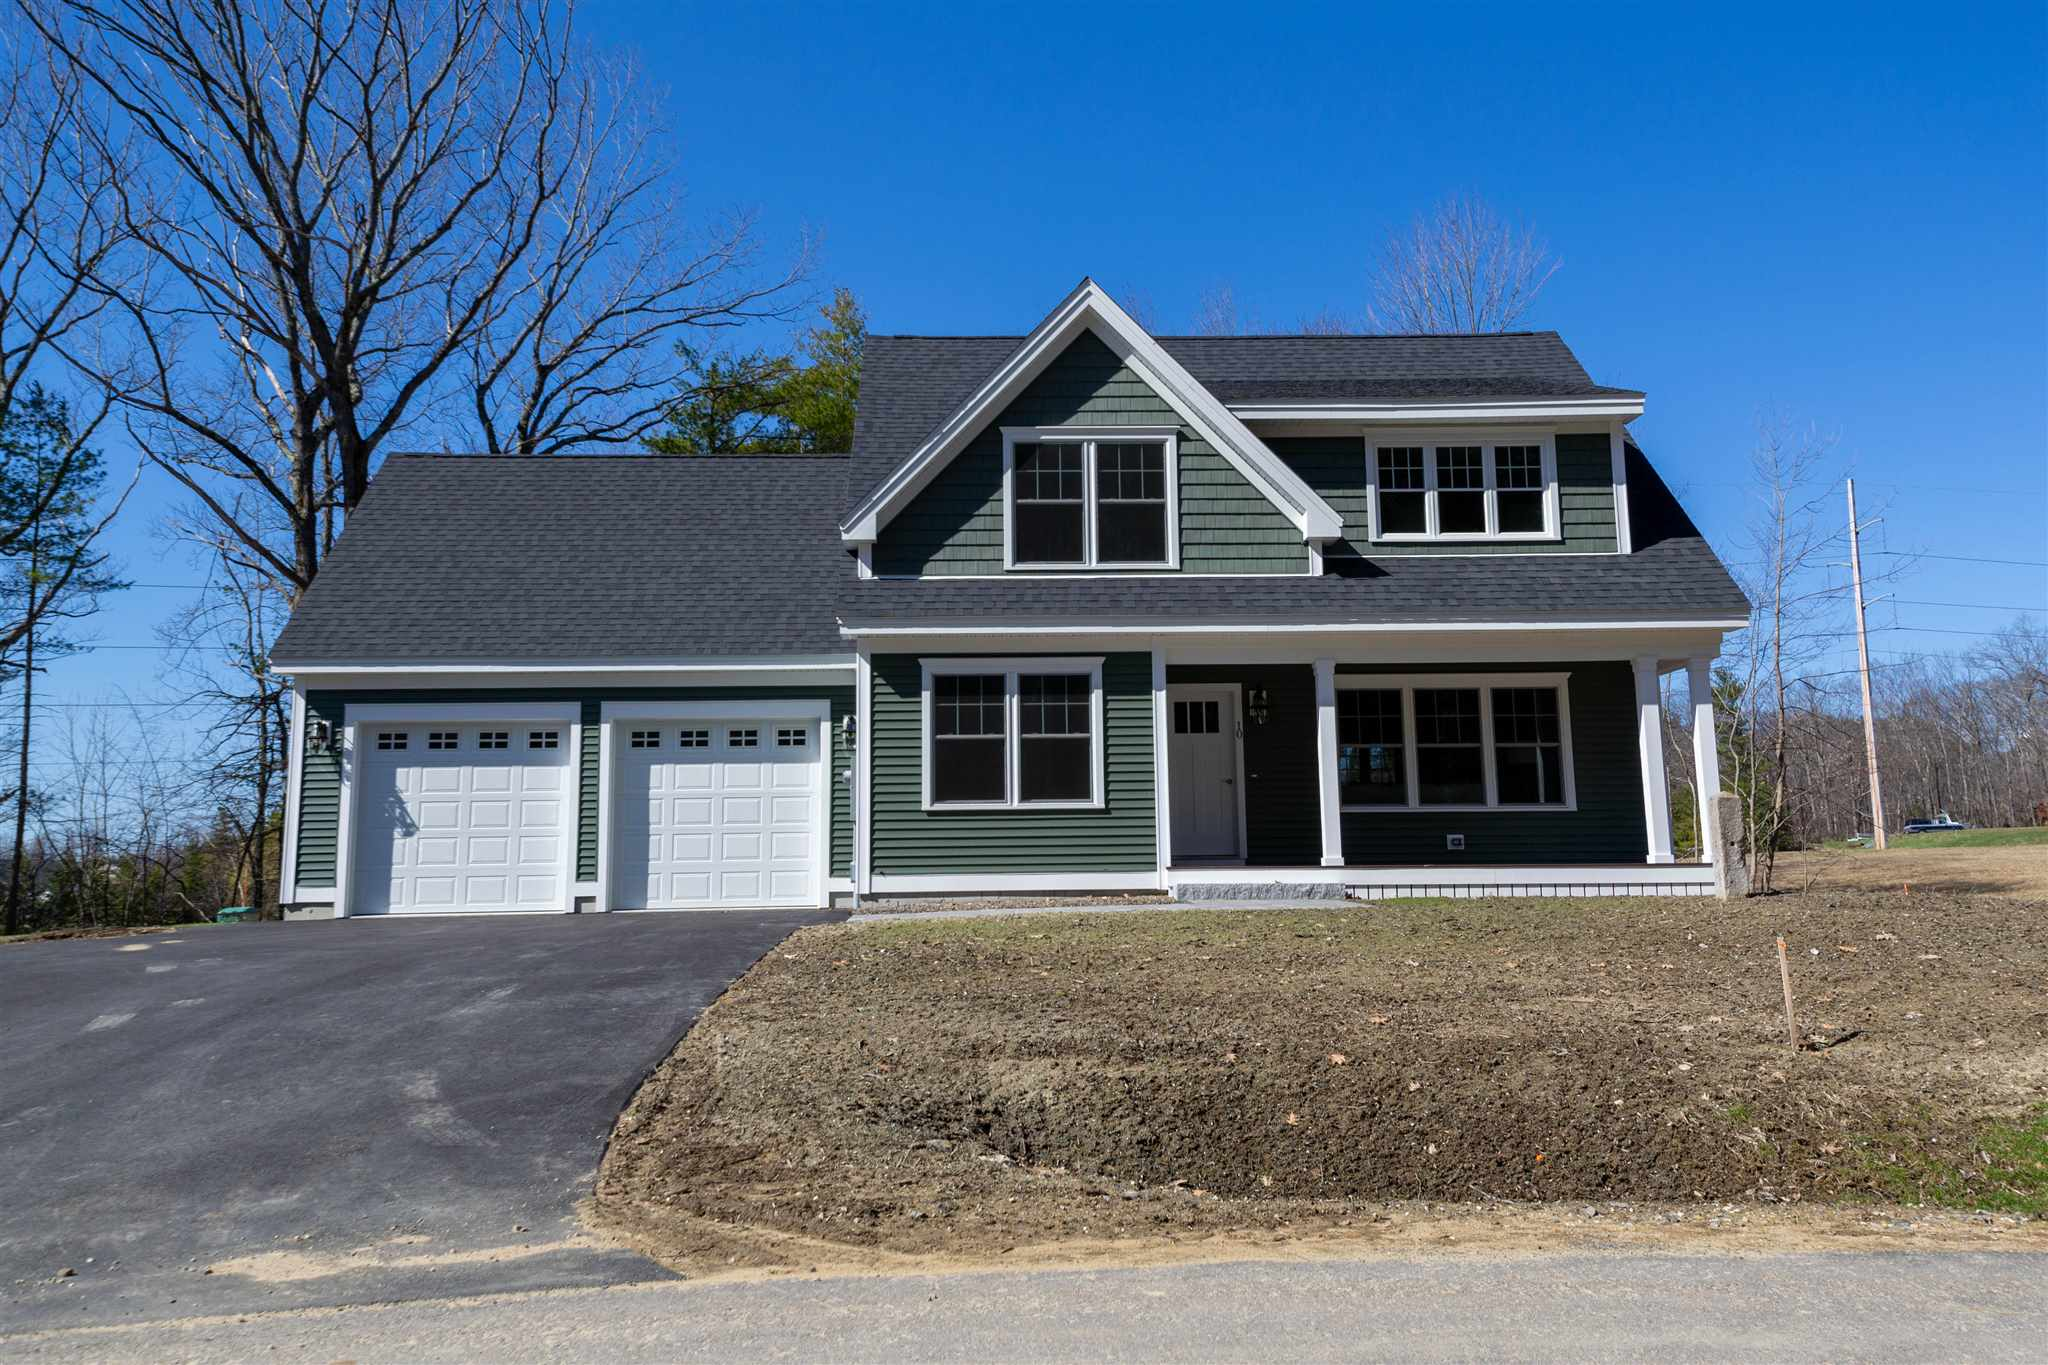 Photo of Lot 14 Garrison Cove Dover NH 03820